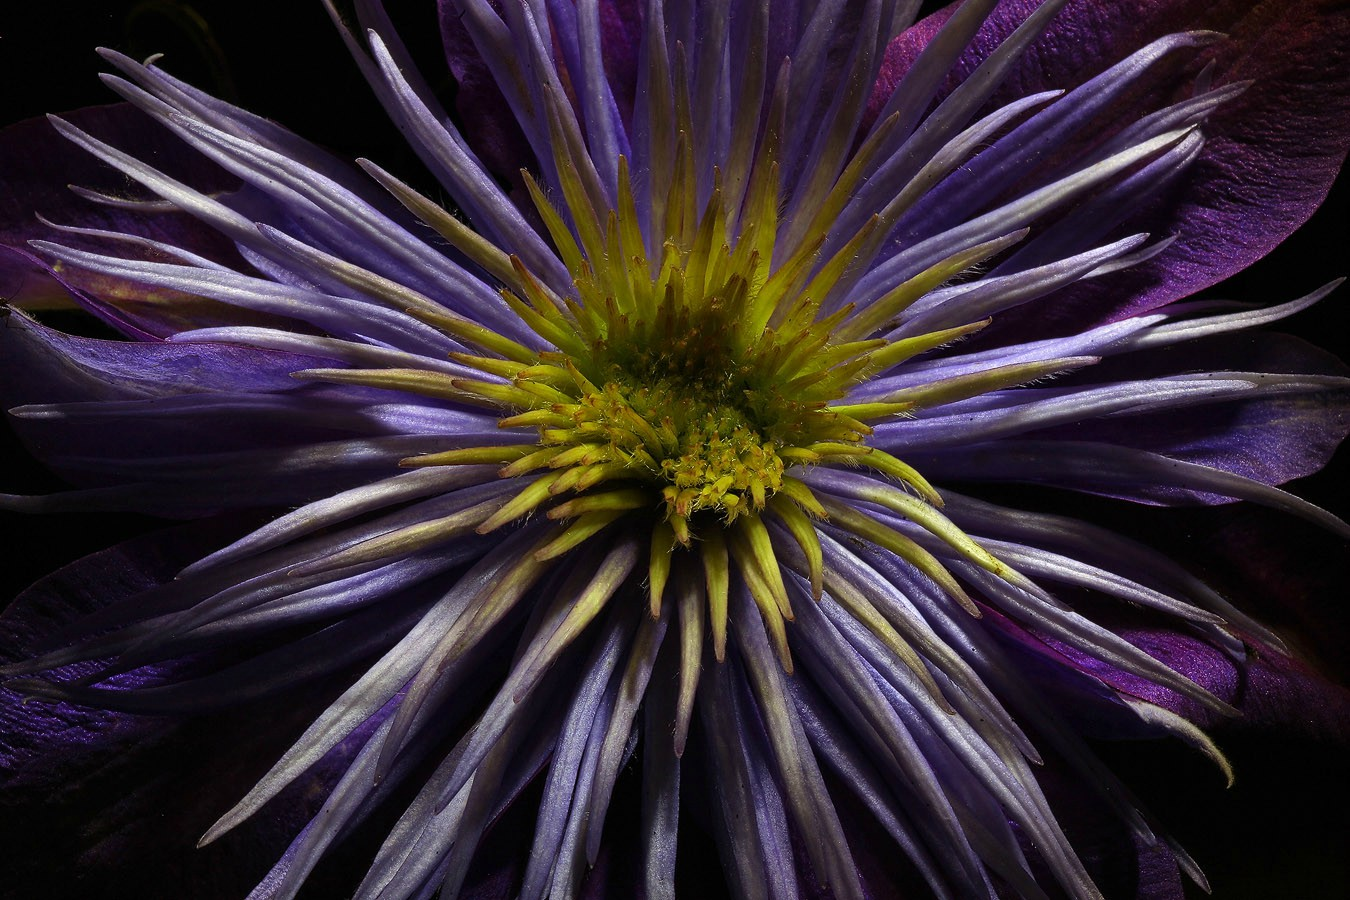 clematis img aw author sava gregory and verena